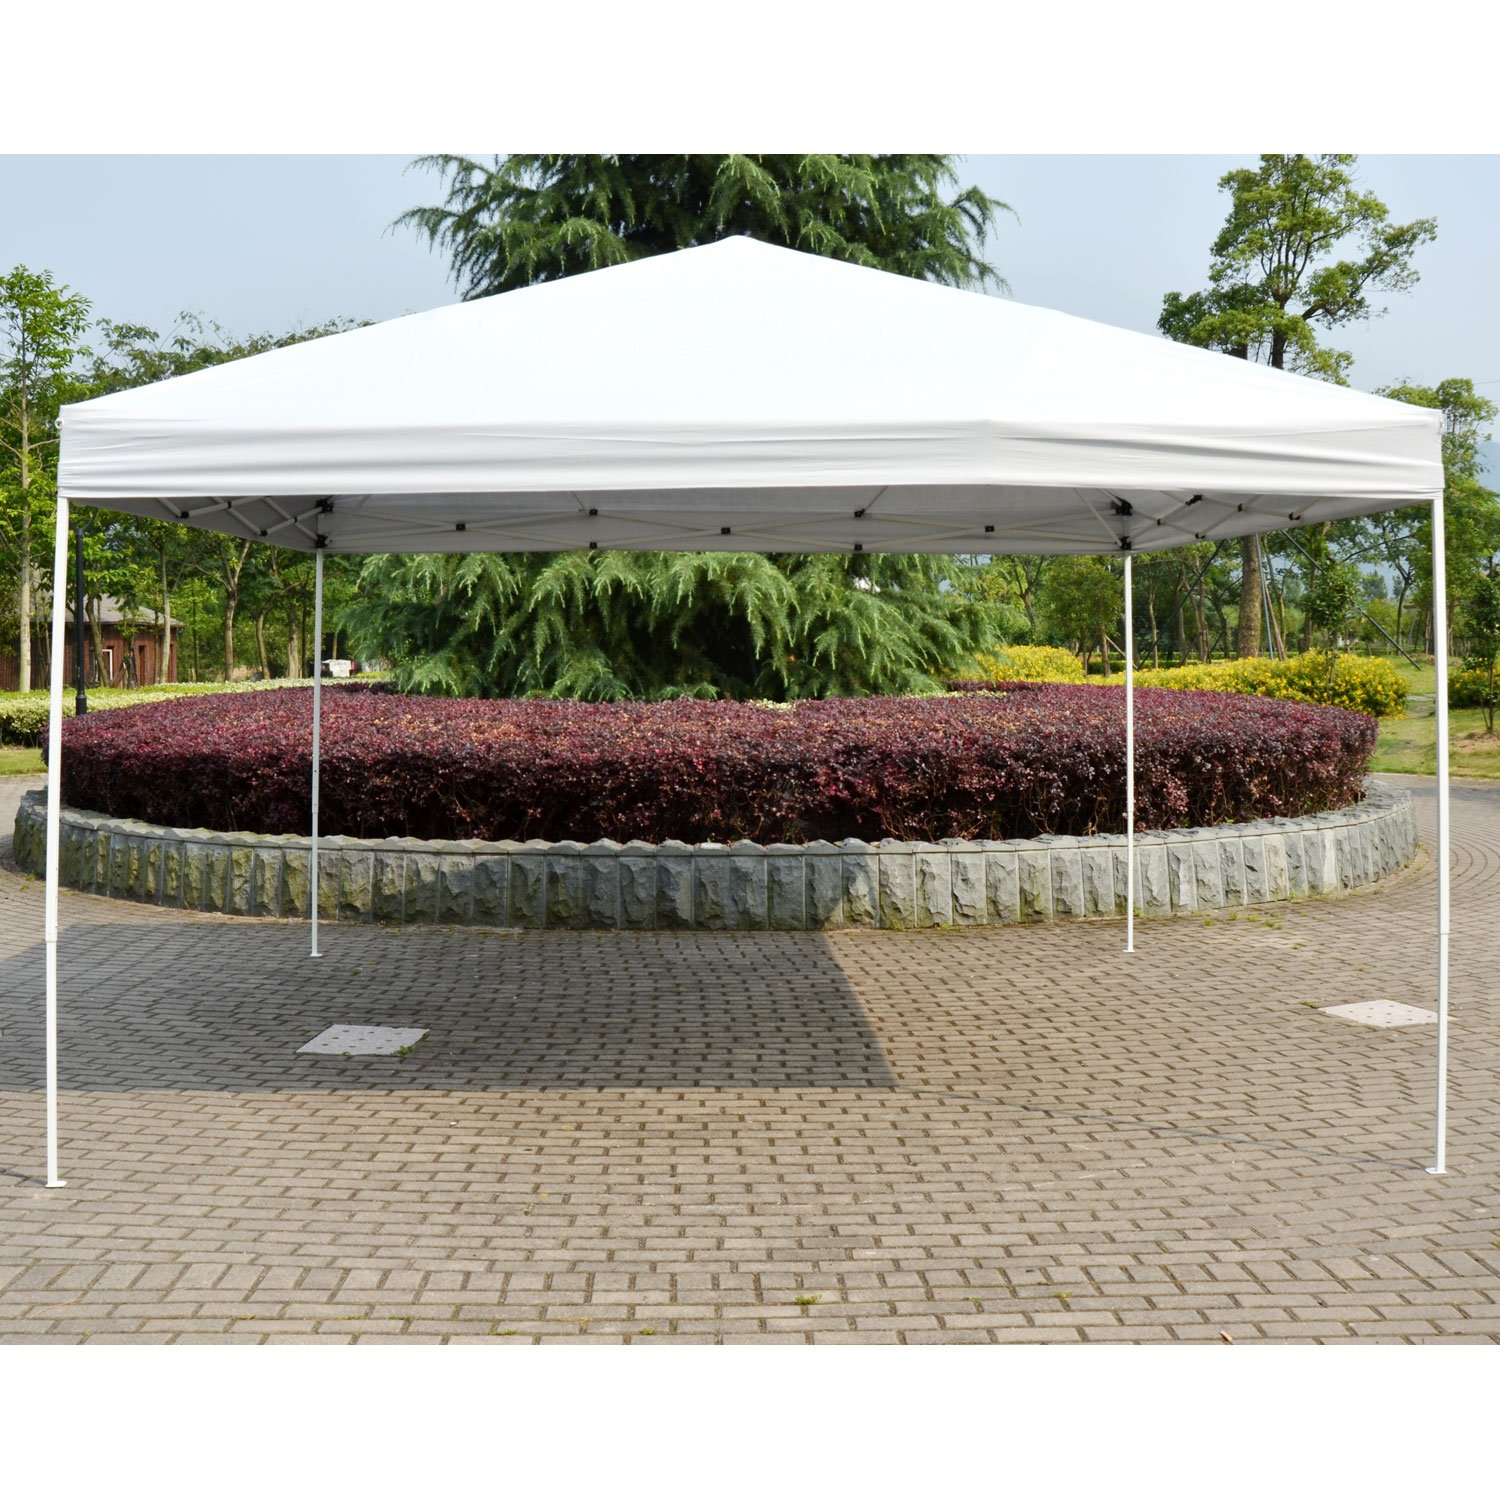 Outsunny 13 x 13 ft Pop Up Tent Outdoor Party Gazebo Patio